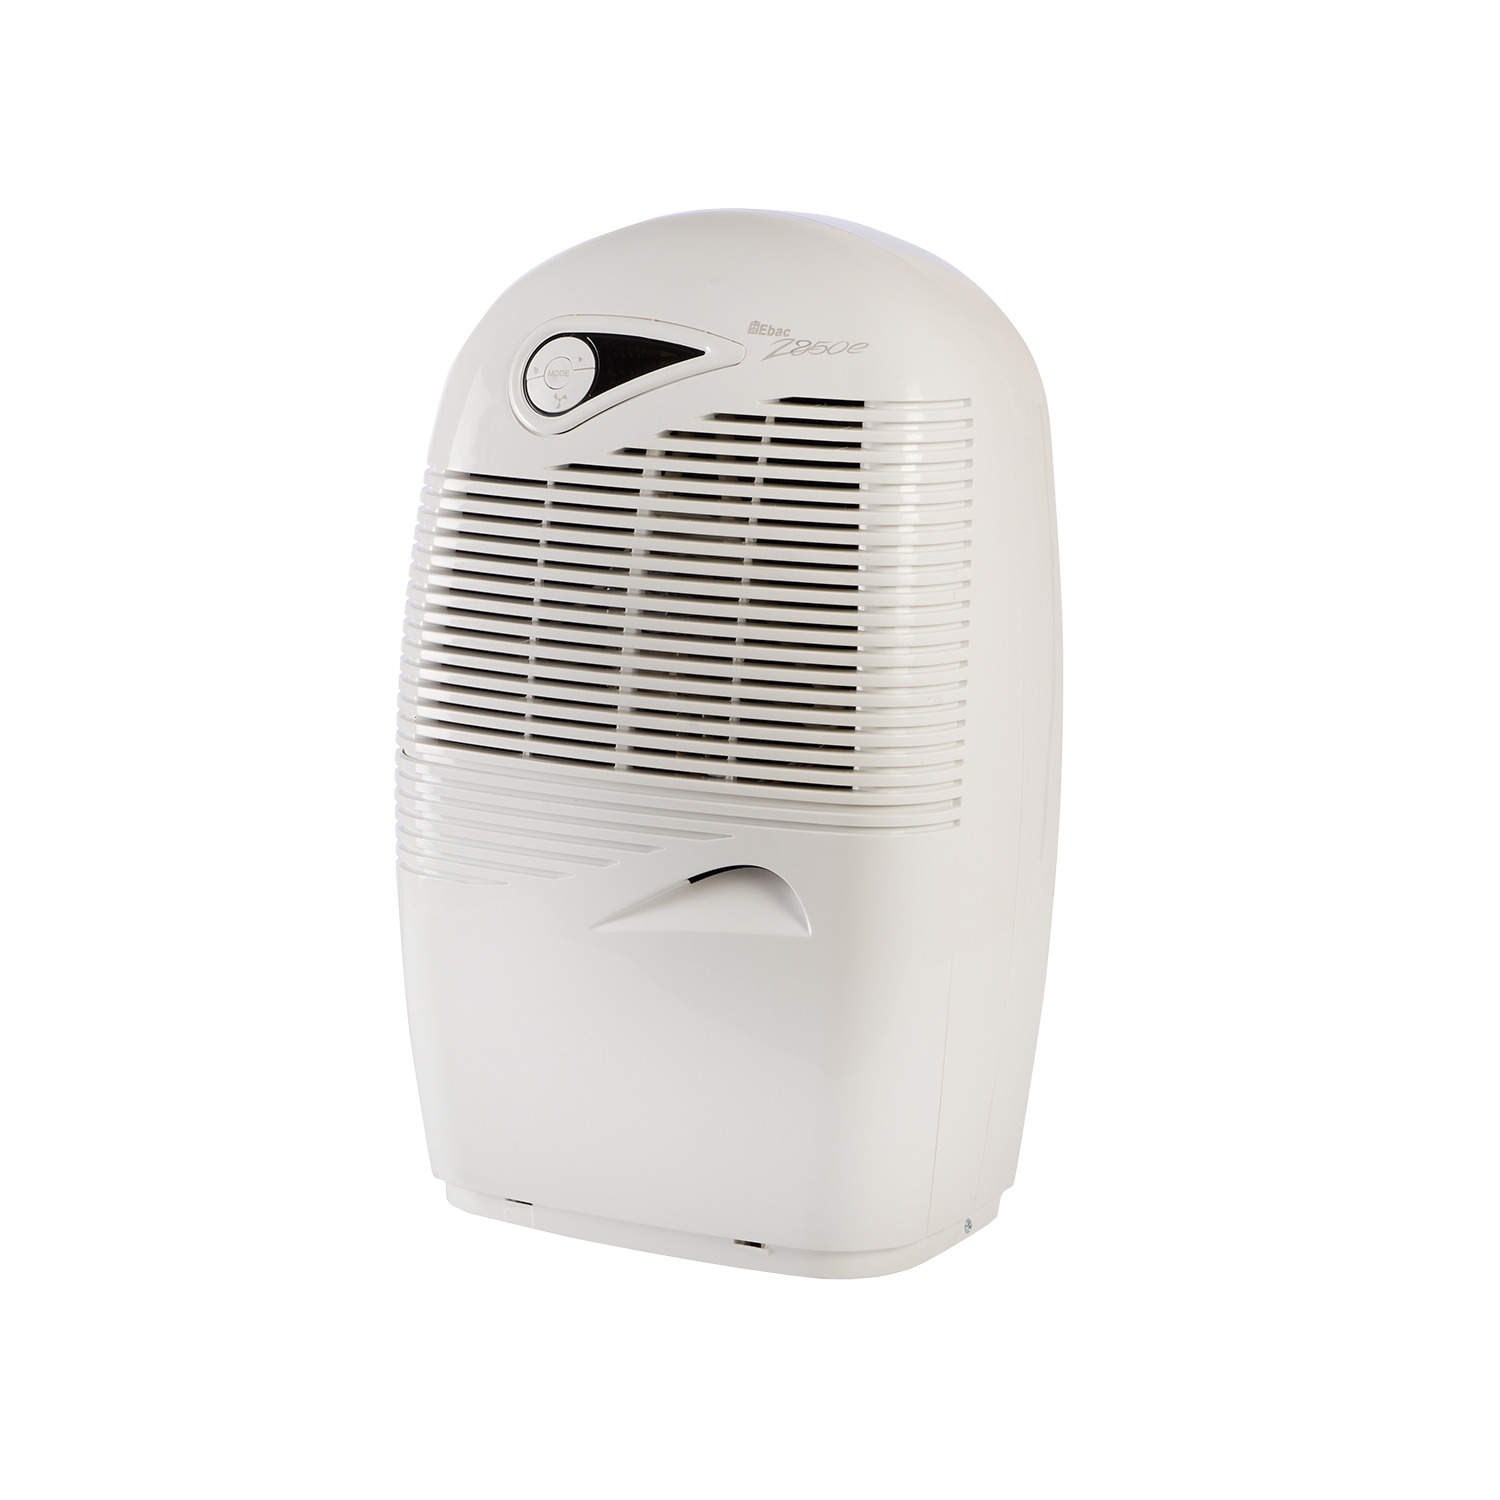 ebac 2850e 21l dehumidifier for up to 5 bedroom homes 2 year